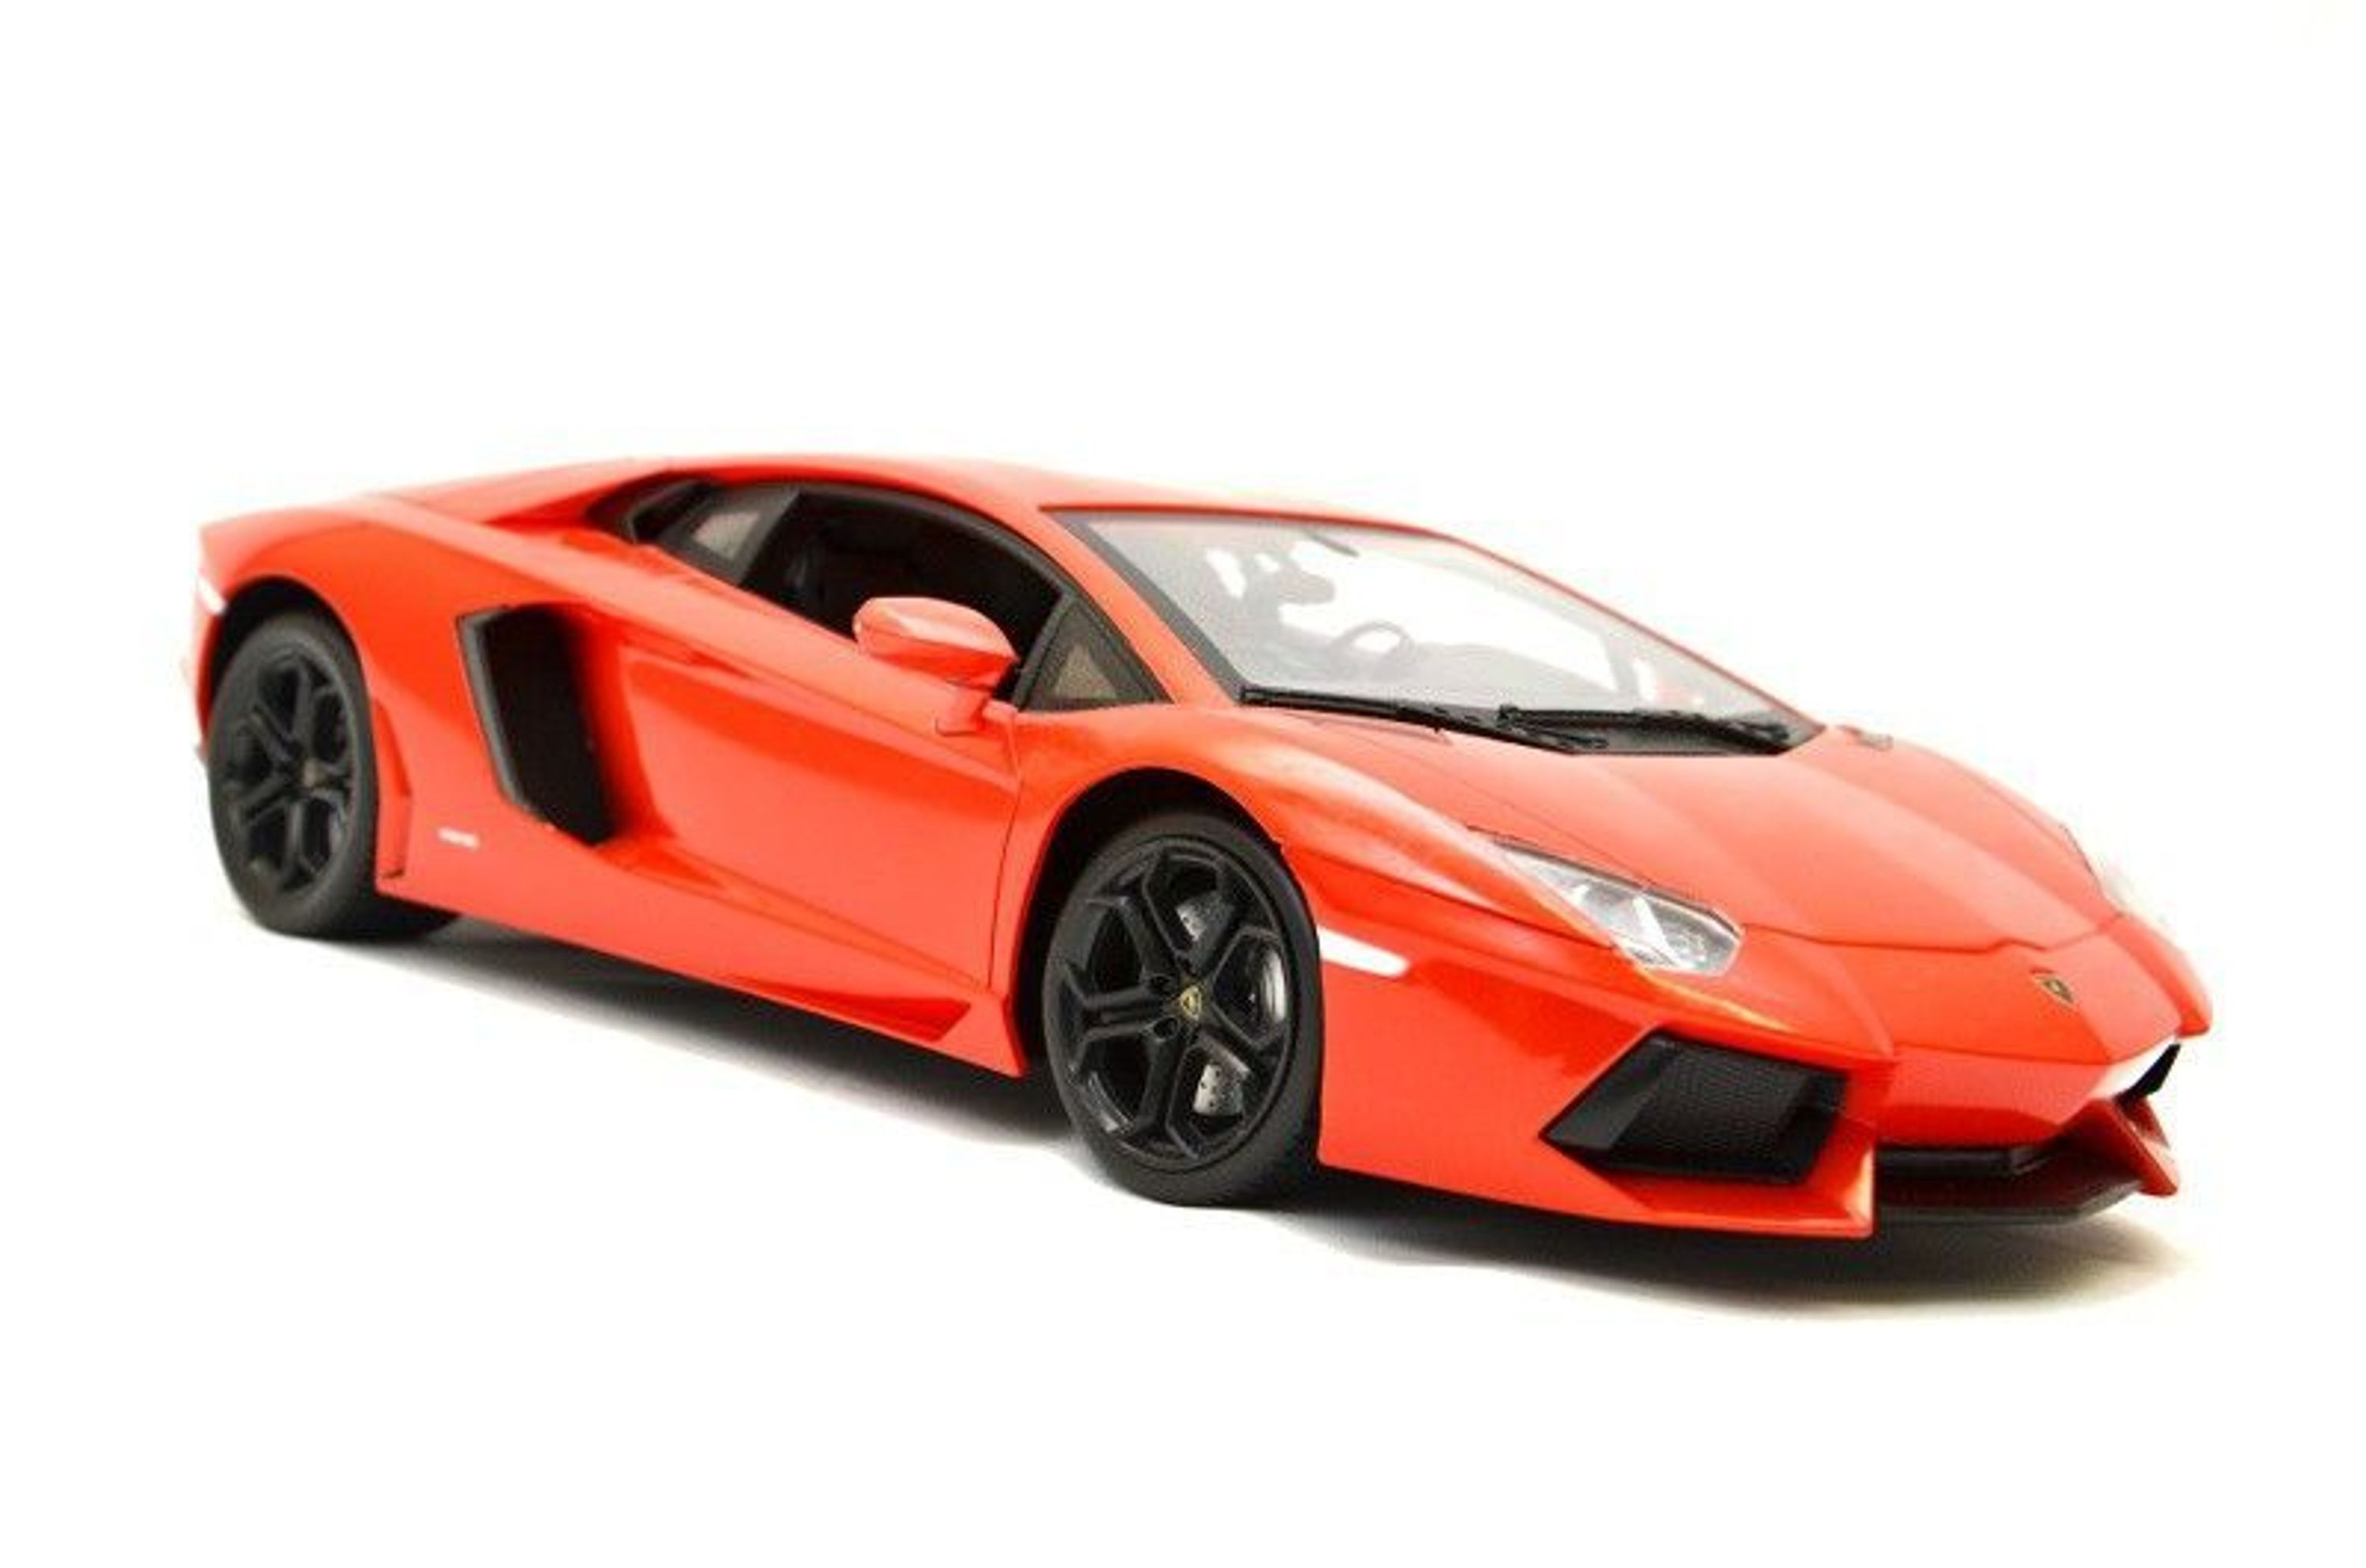 rc auto lamborghini aventador mit lizenz 1 14 orange. Black Bedroom Furniture Sets. Home Design Ideas